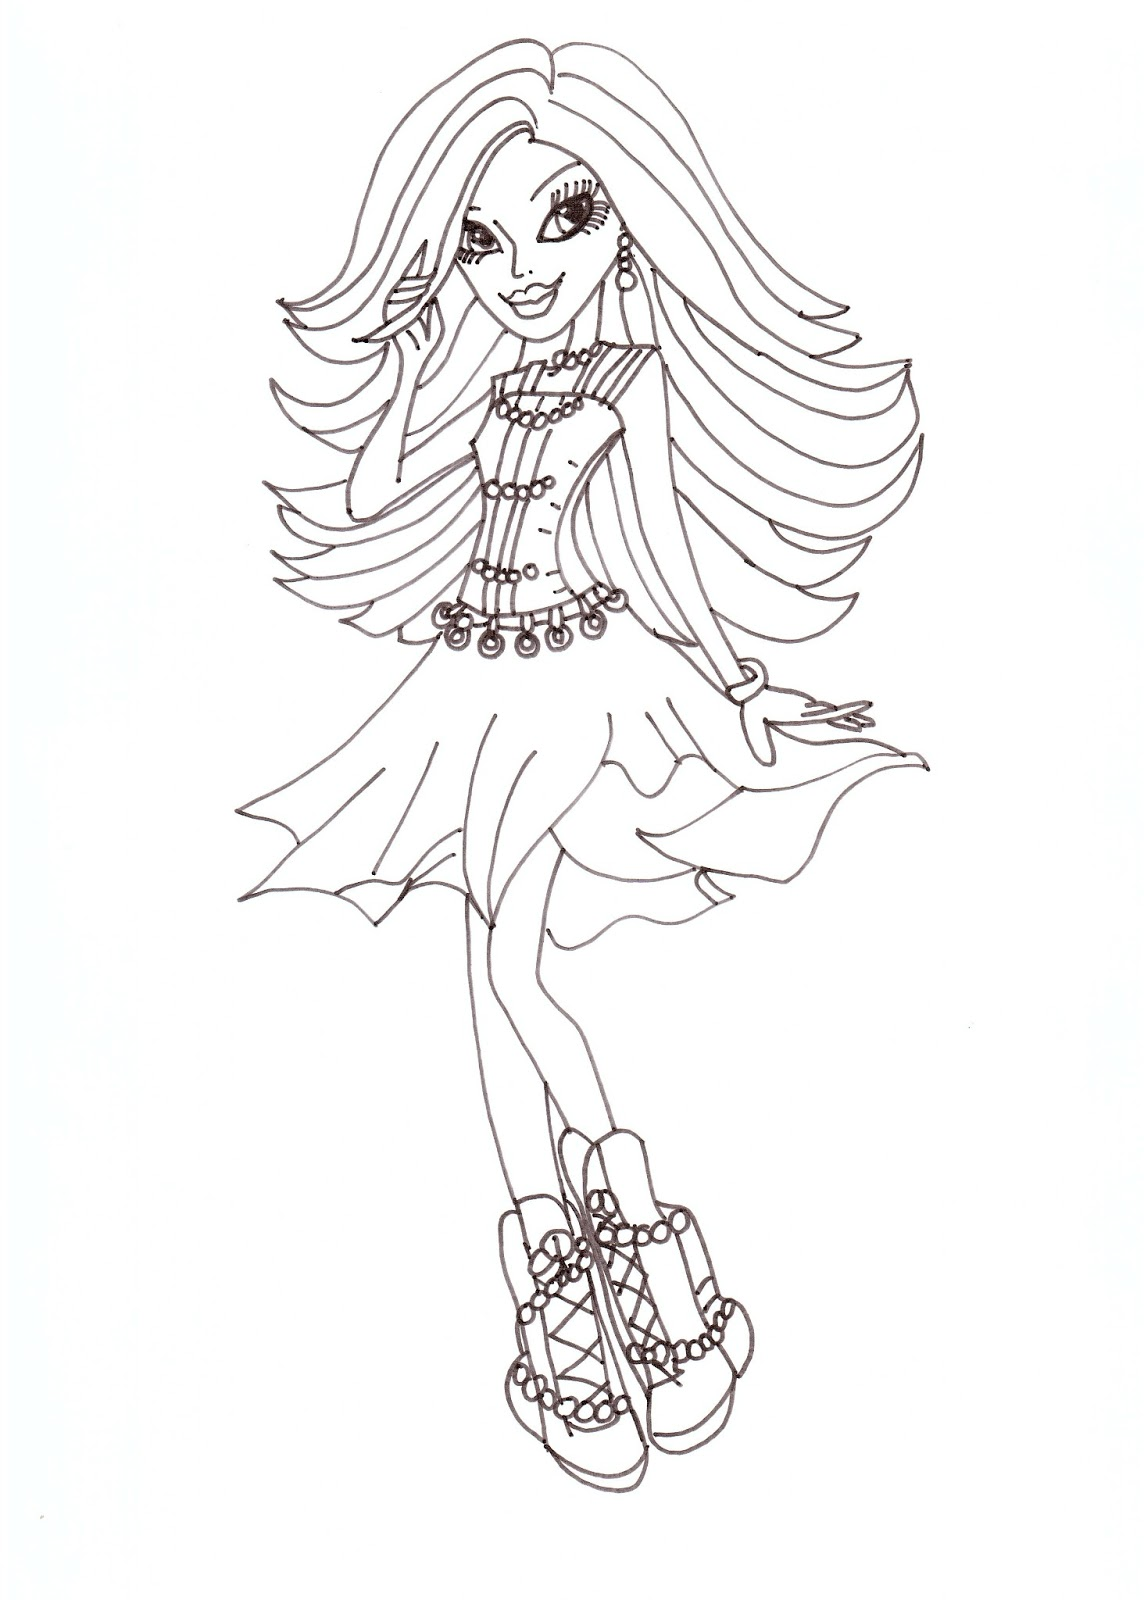 Free printable monster high coloring pages spectra for Monster high color pages free